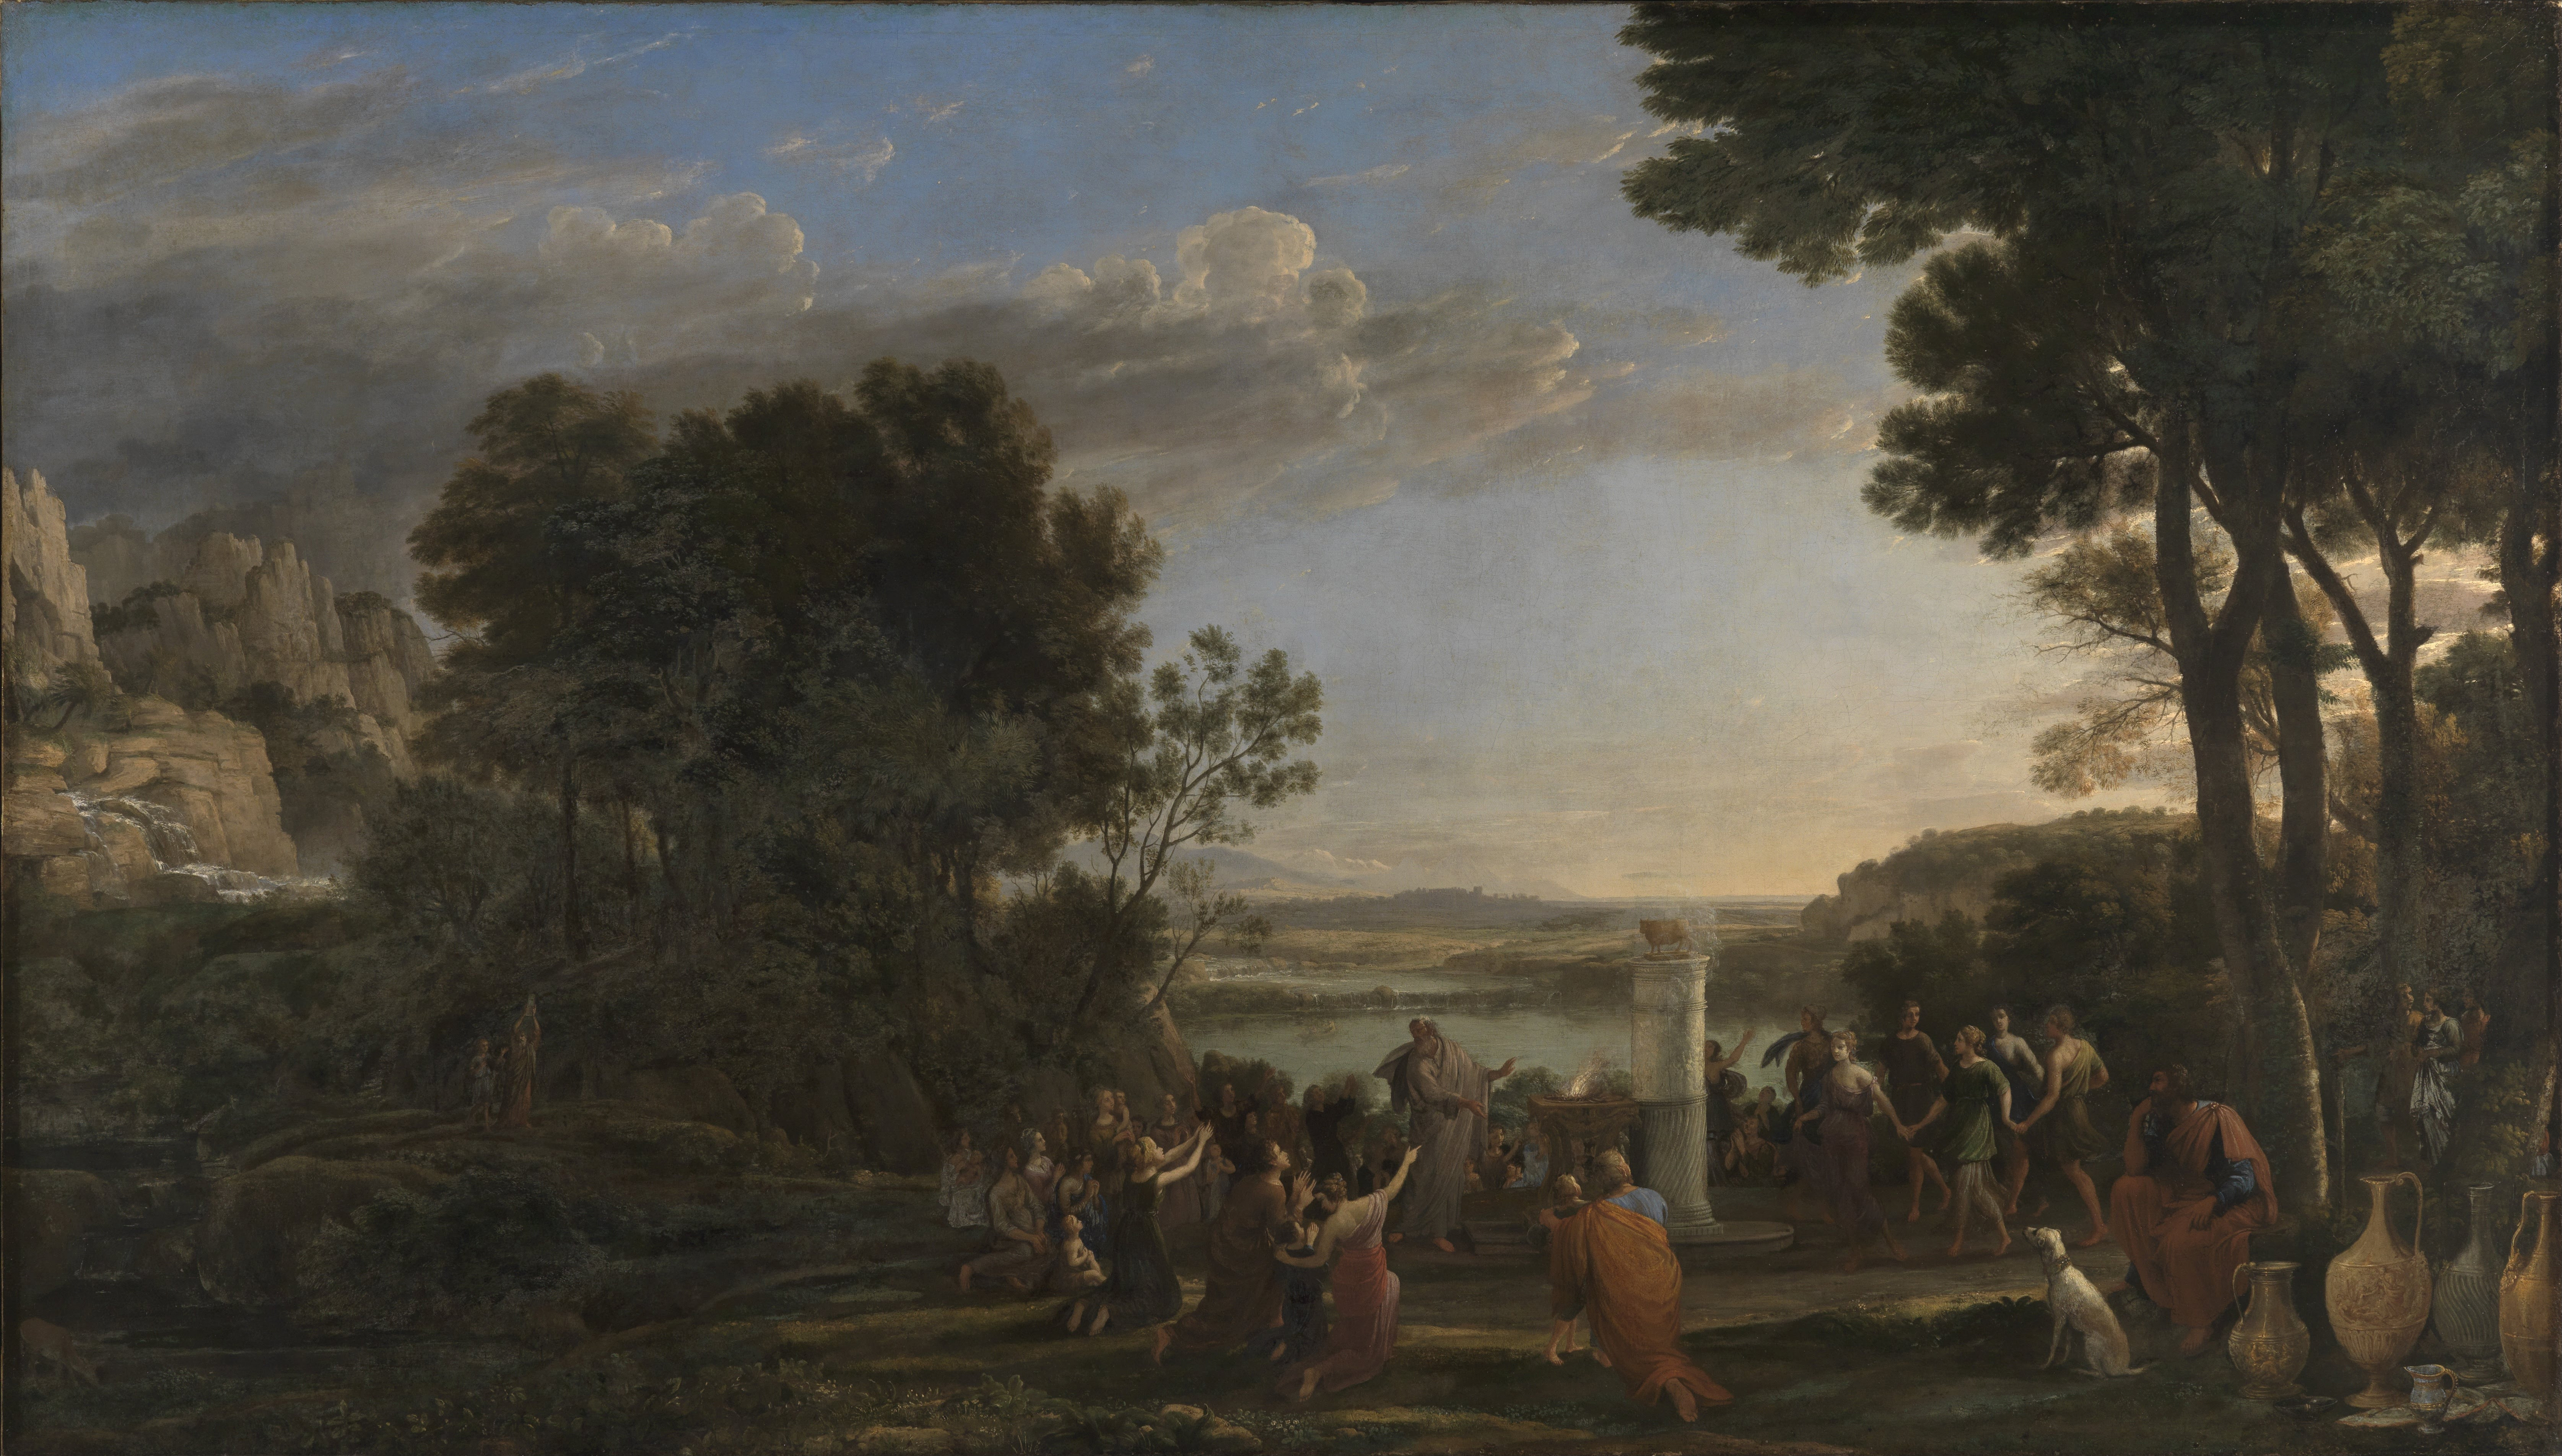 Worship of the Golden Calf by Claude Gellée, called Le Lorrain, Oil on canvas, 1653. Currently in the collection of Staatliche Kunsthalle in Karlsruhe, Germany.